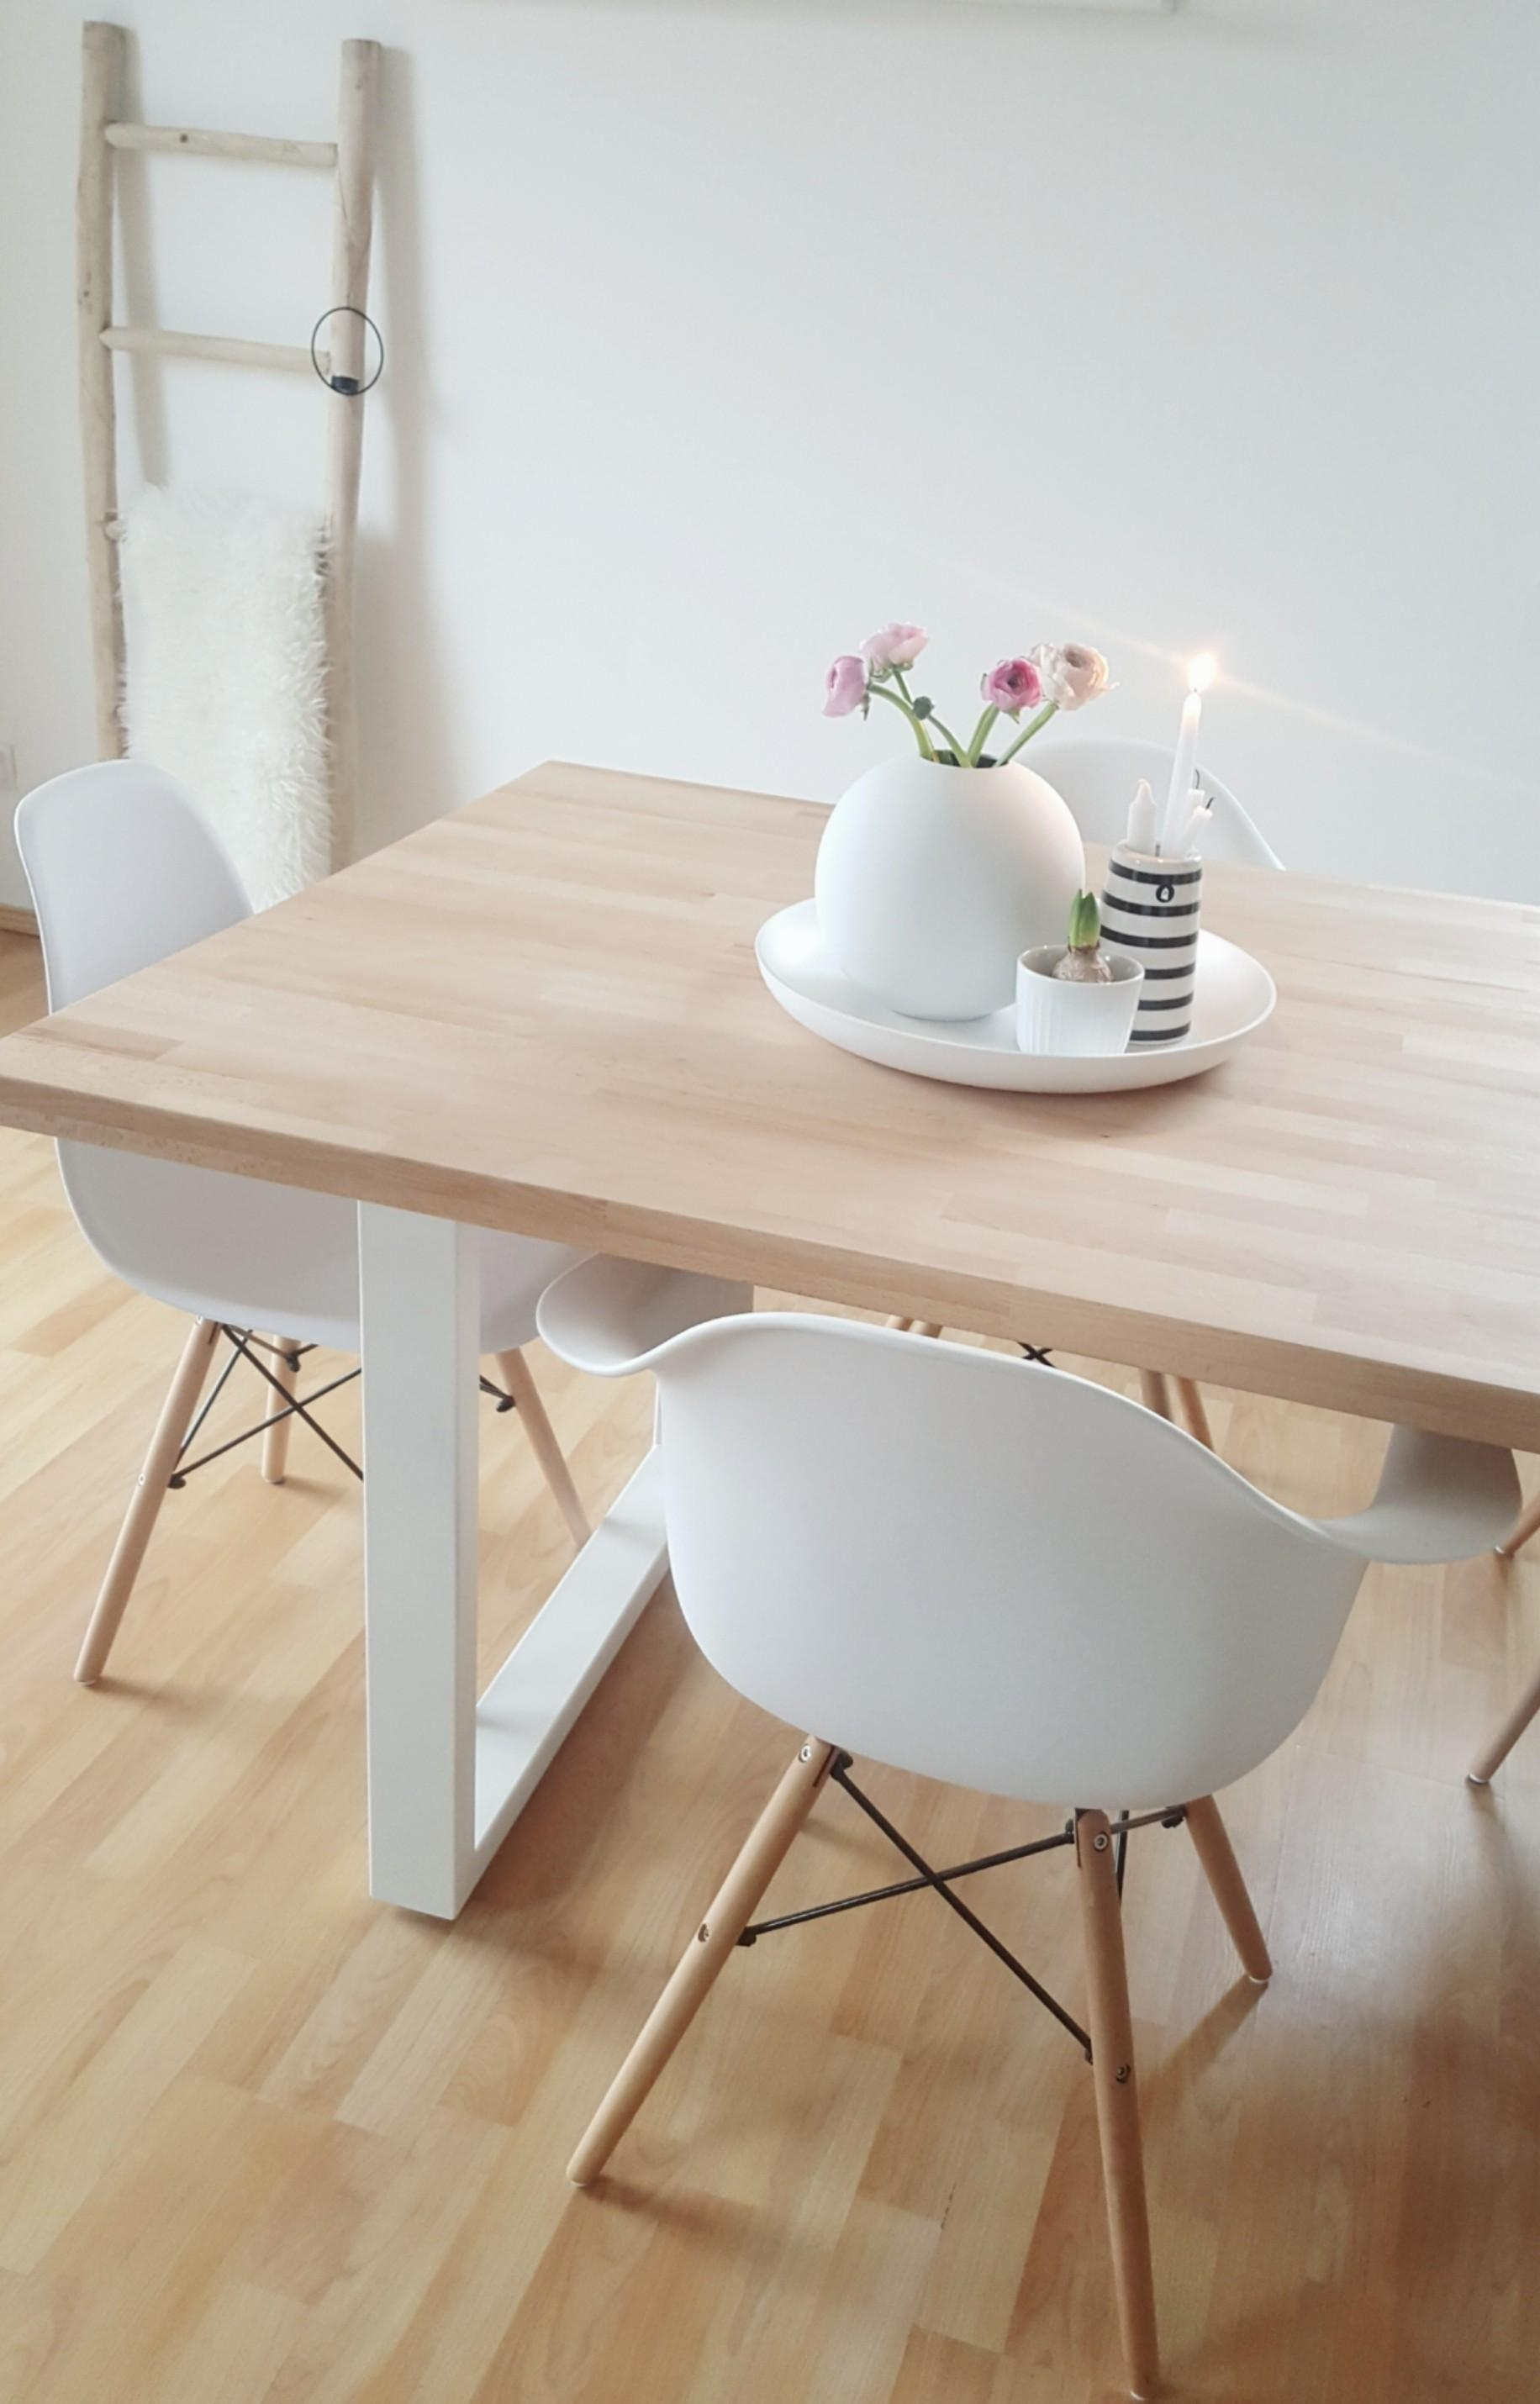 Essgruppe